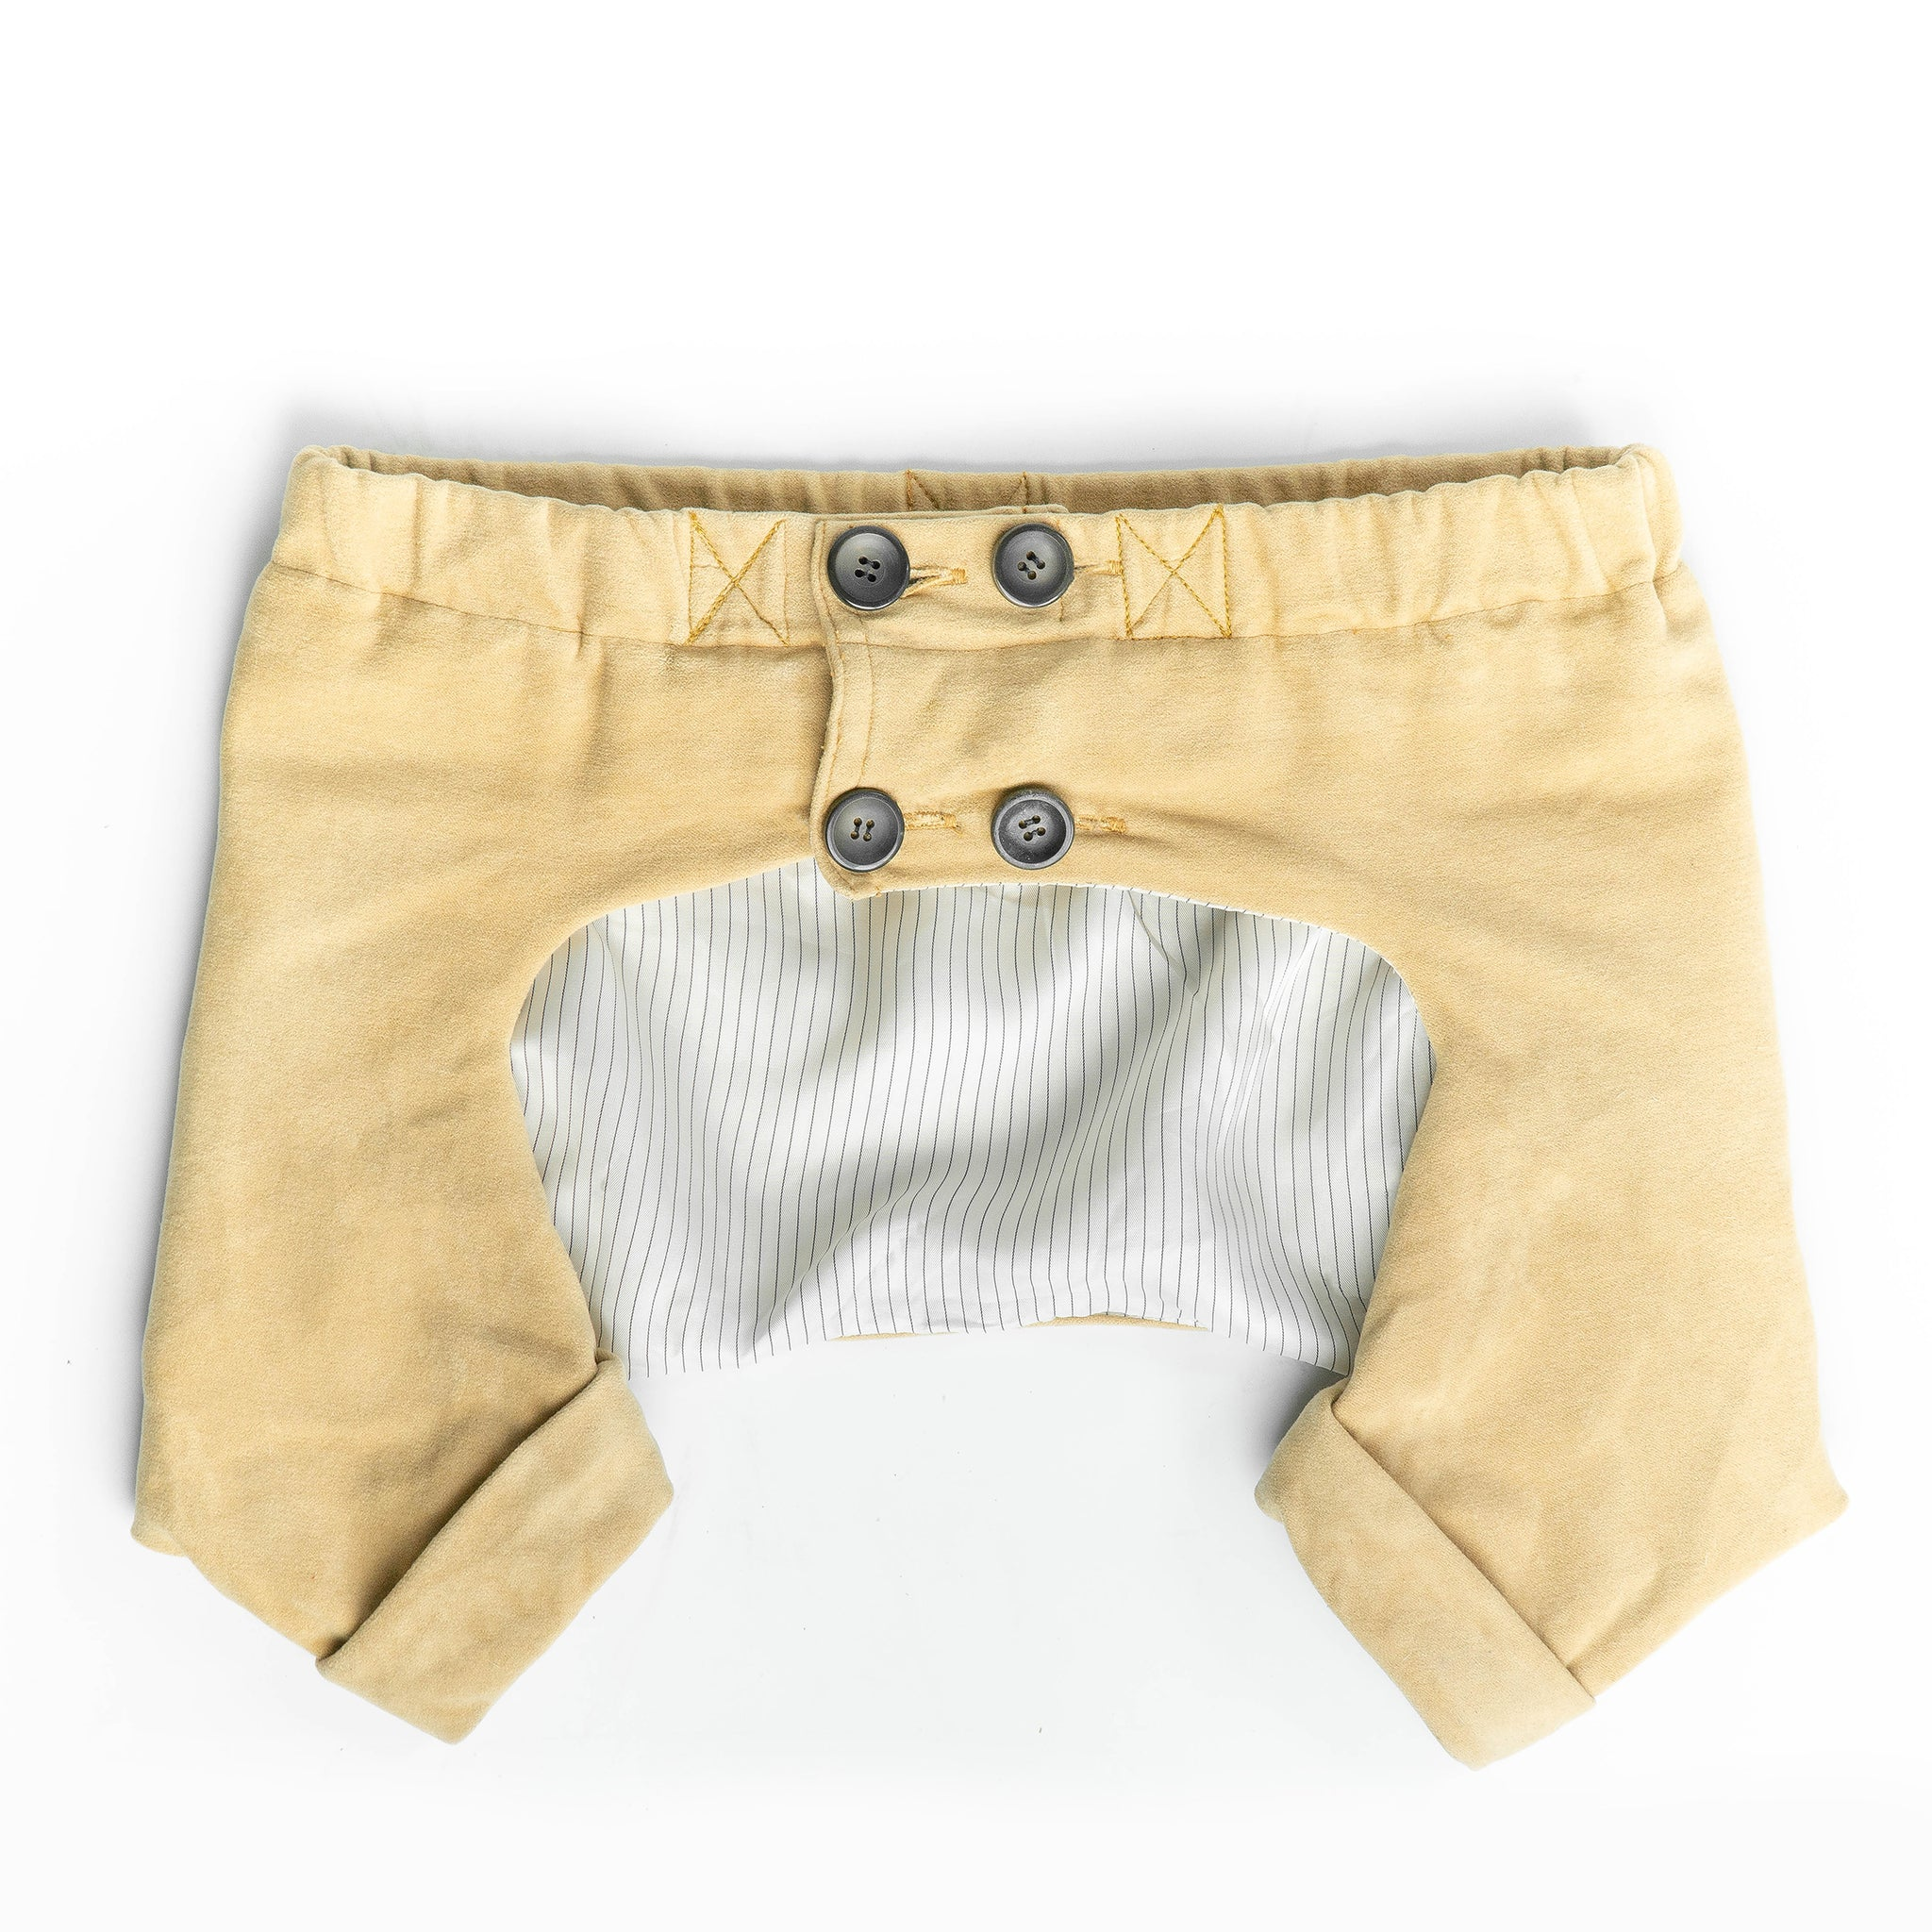 WONTON One Pants in Beige - WontonCollection